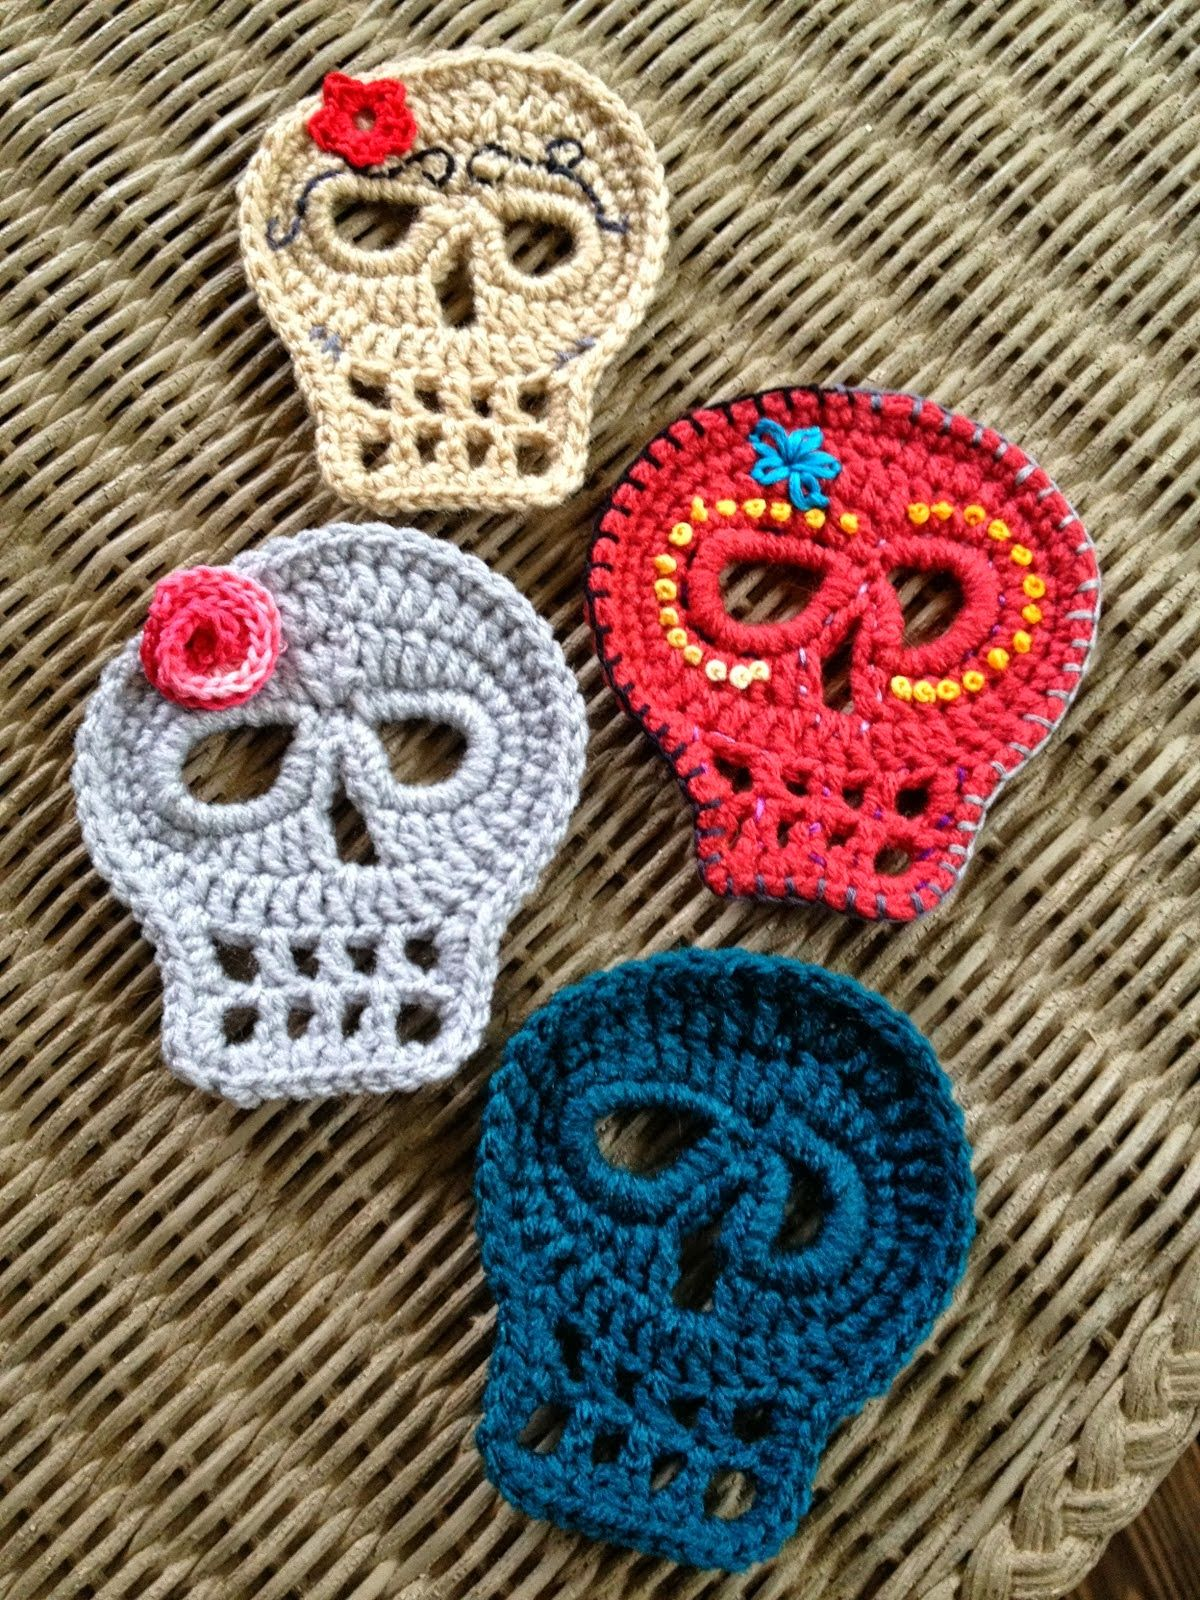 There are a few awesome crochet patterns throughout the web for Dia ...